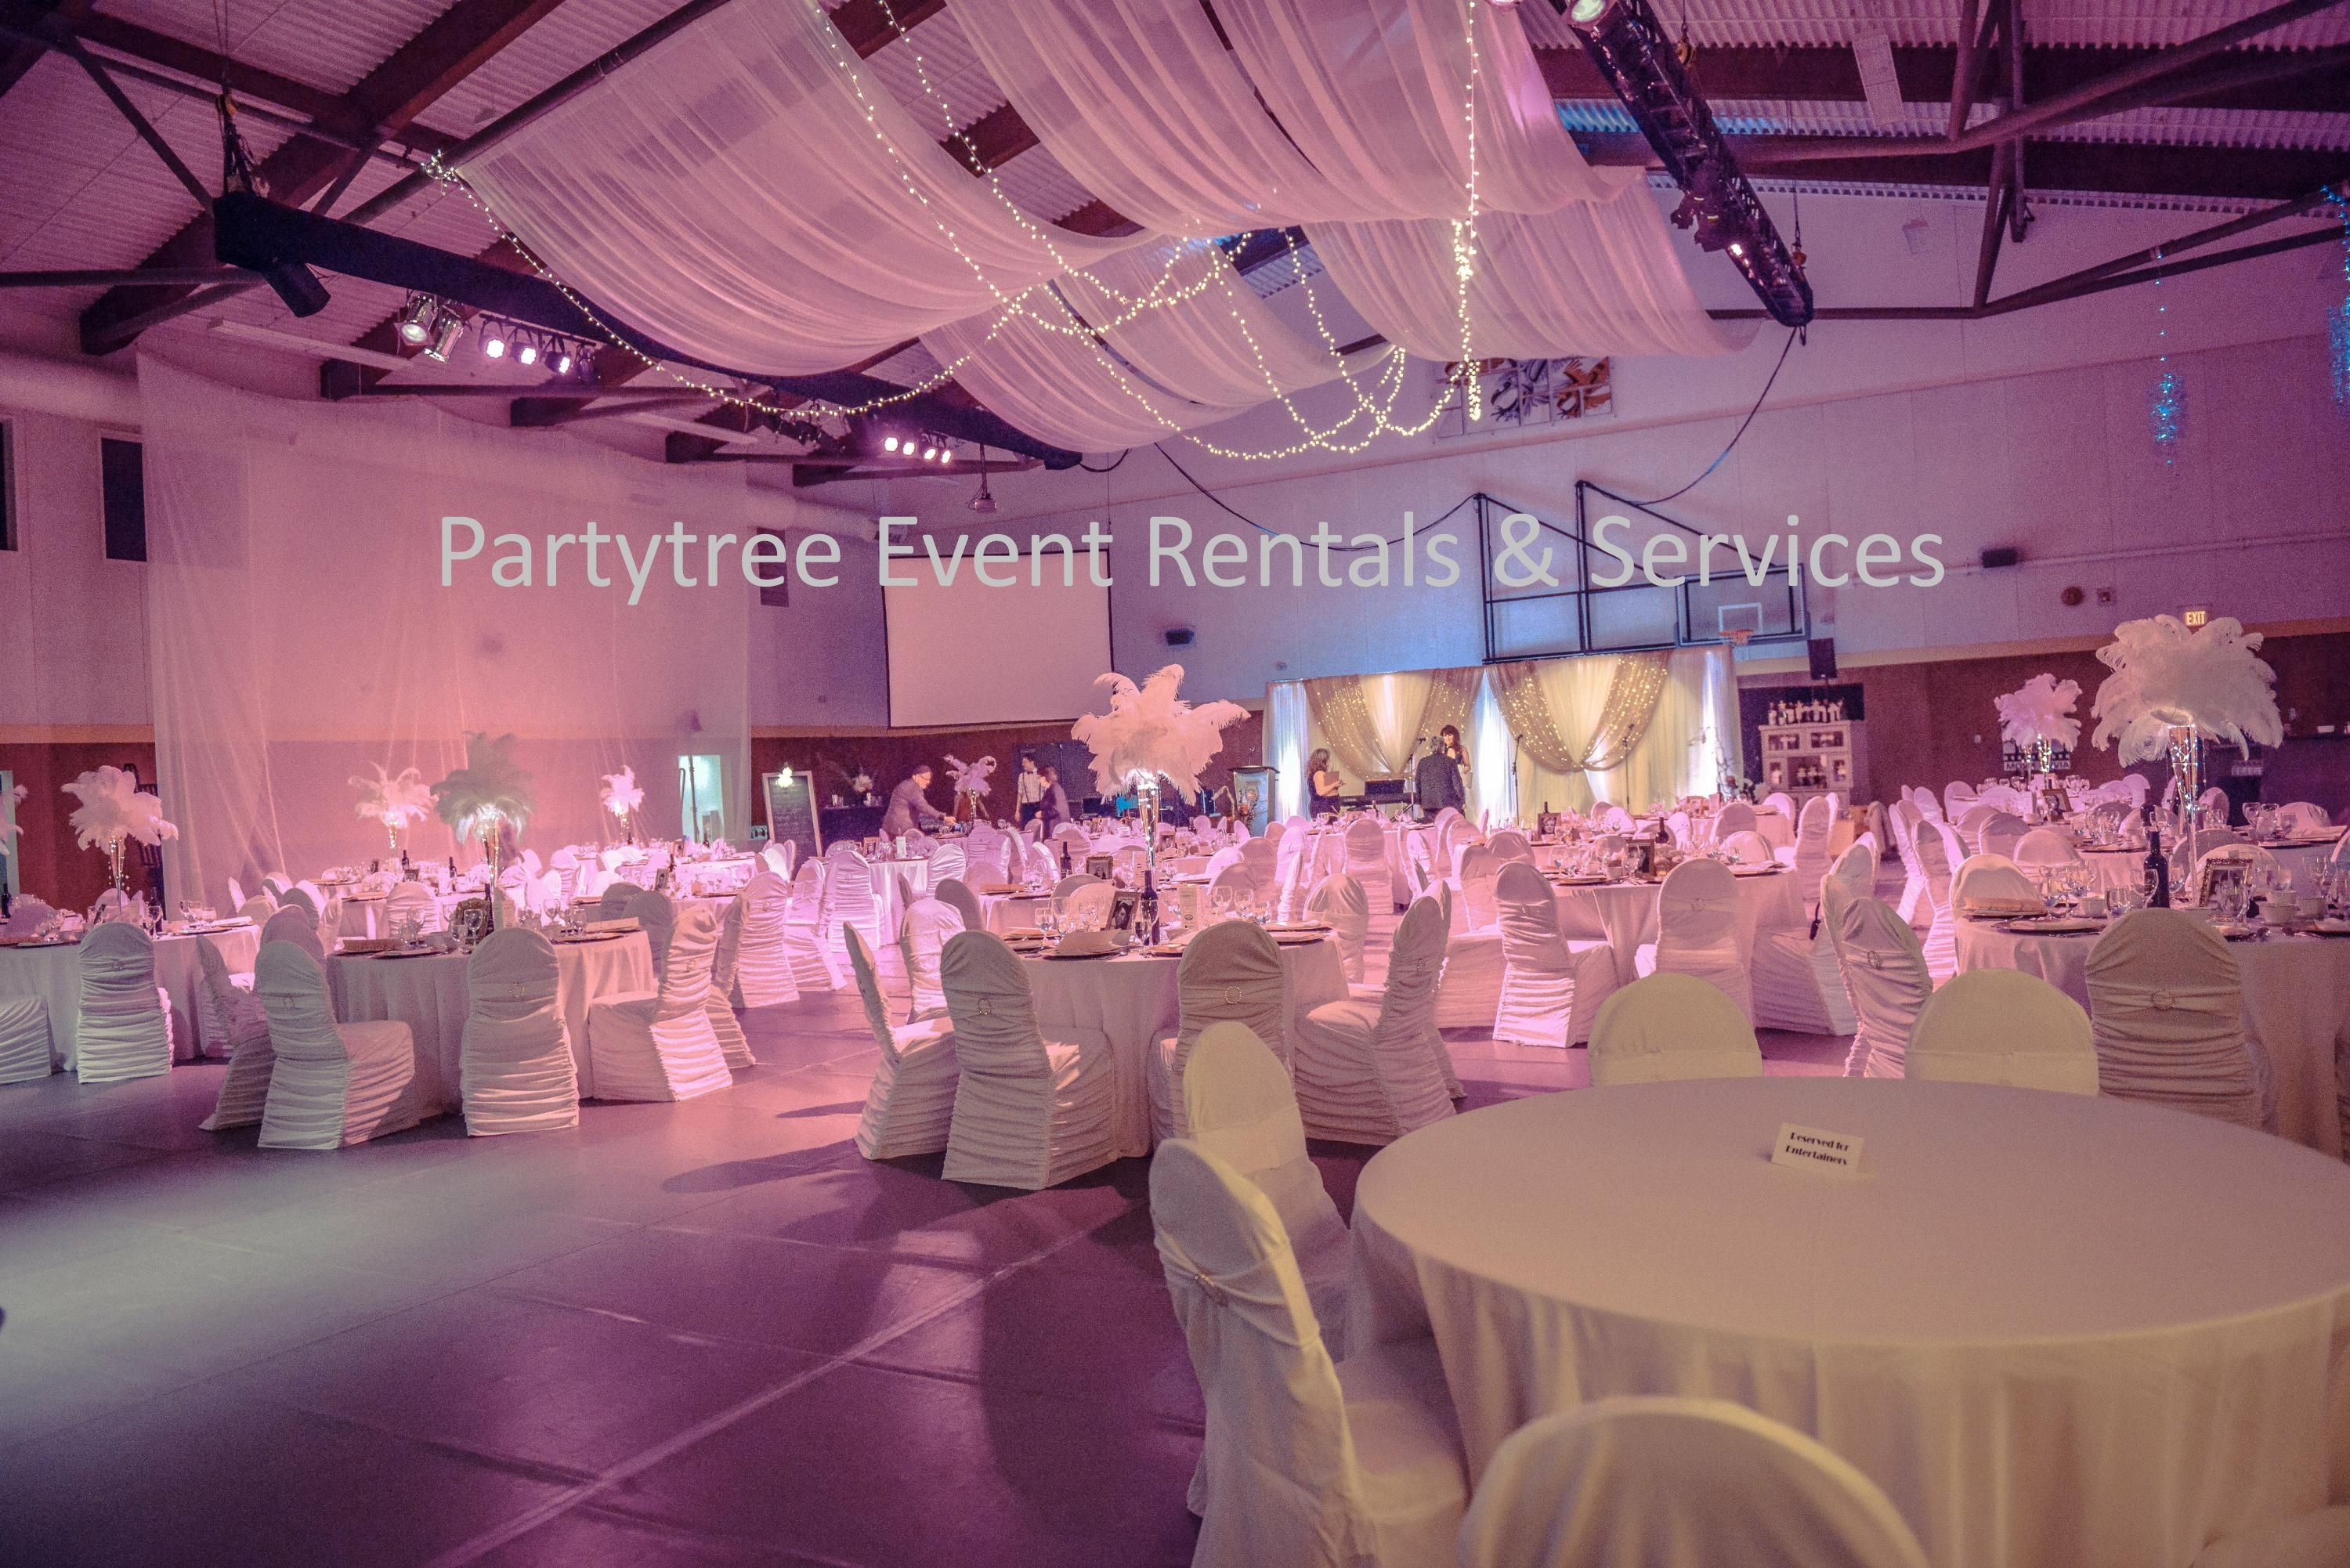 hang fabric party drapes events x ltd lighting sheer valley rentals event for globe ceiling to draping tent and how decor